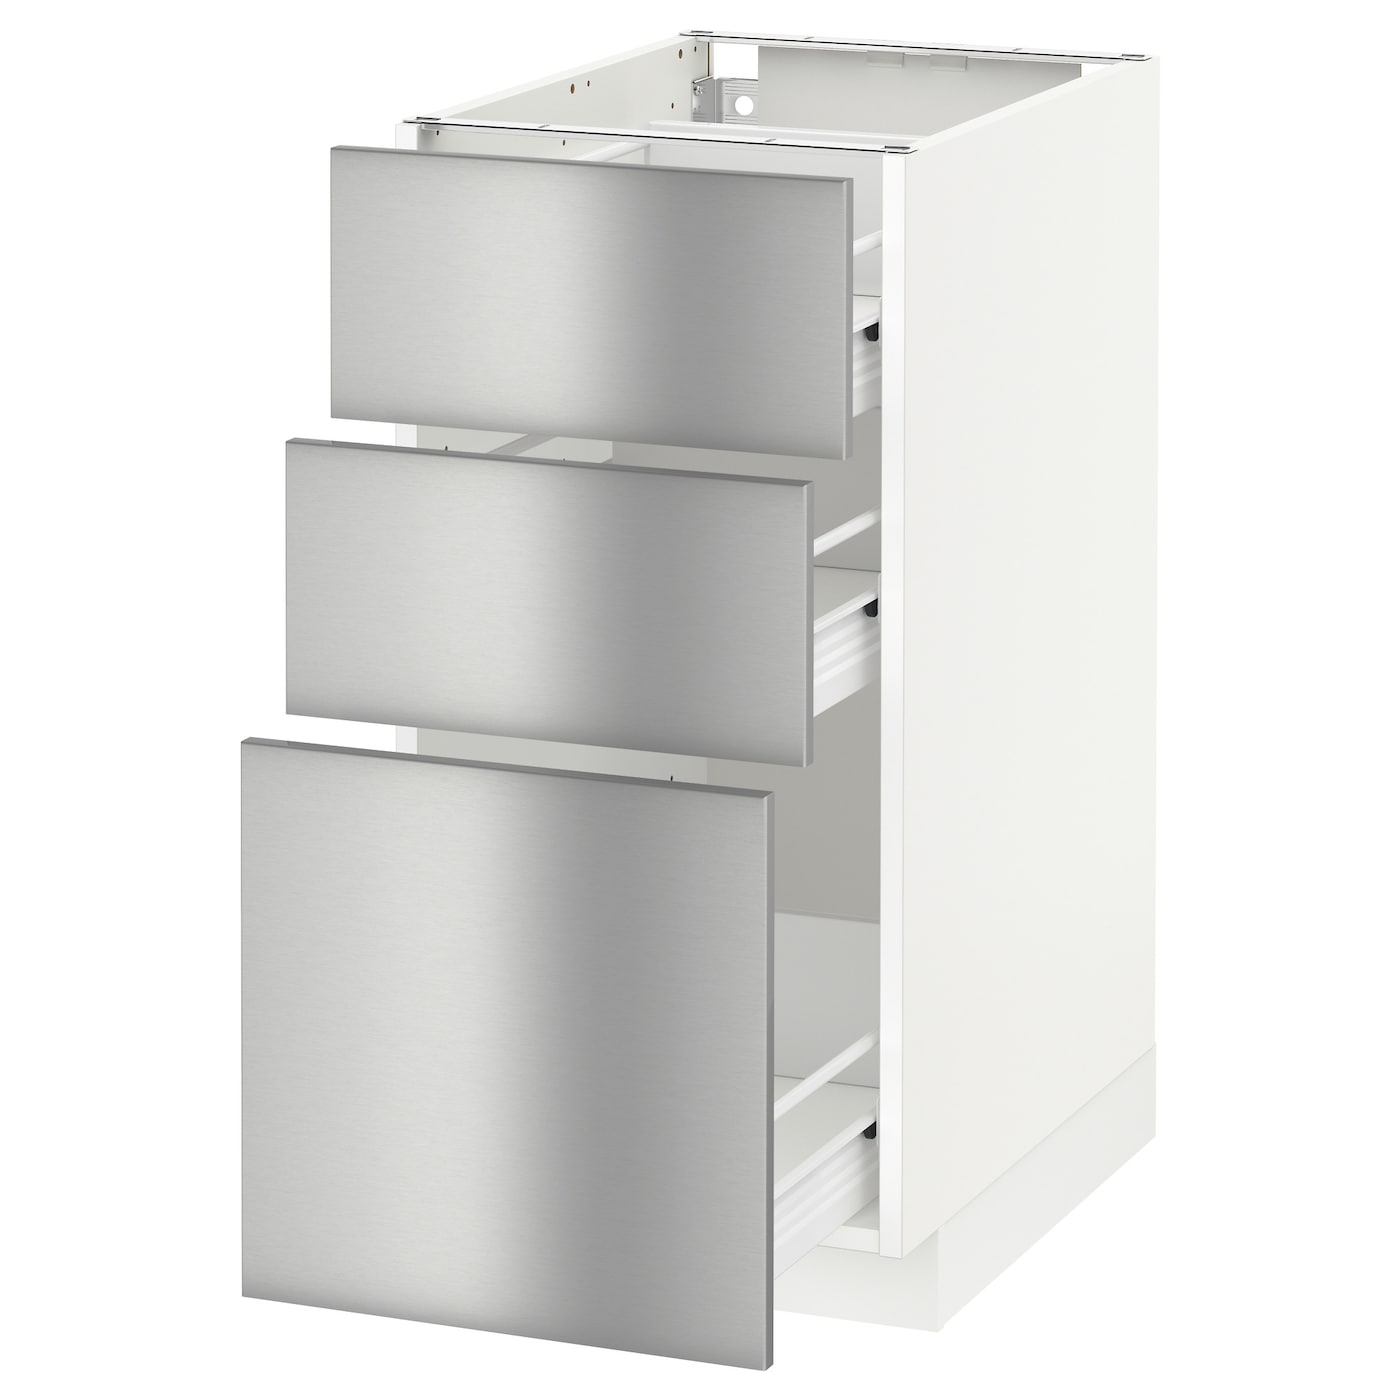 Kitchen White Cabinets Stainless: METOD/FÖRVARA Base Cabinet With 3 Drawers White/grevsta